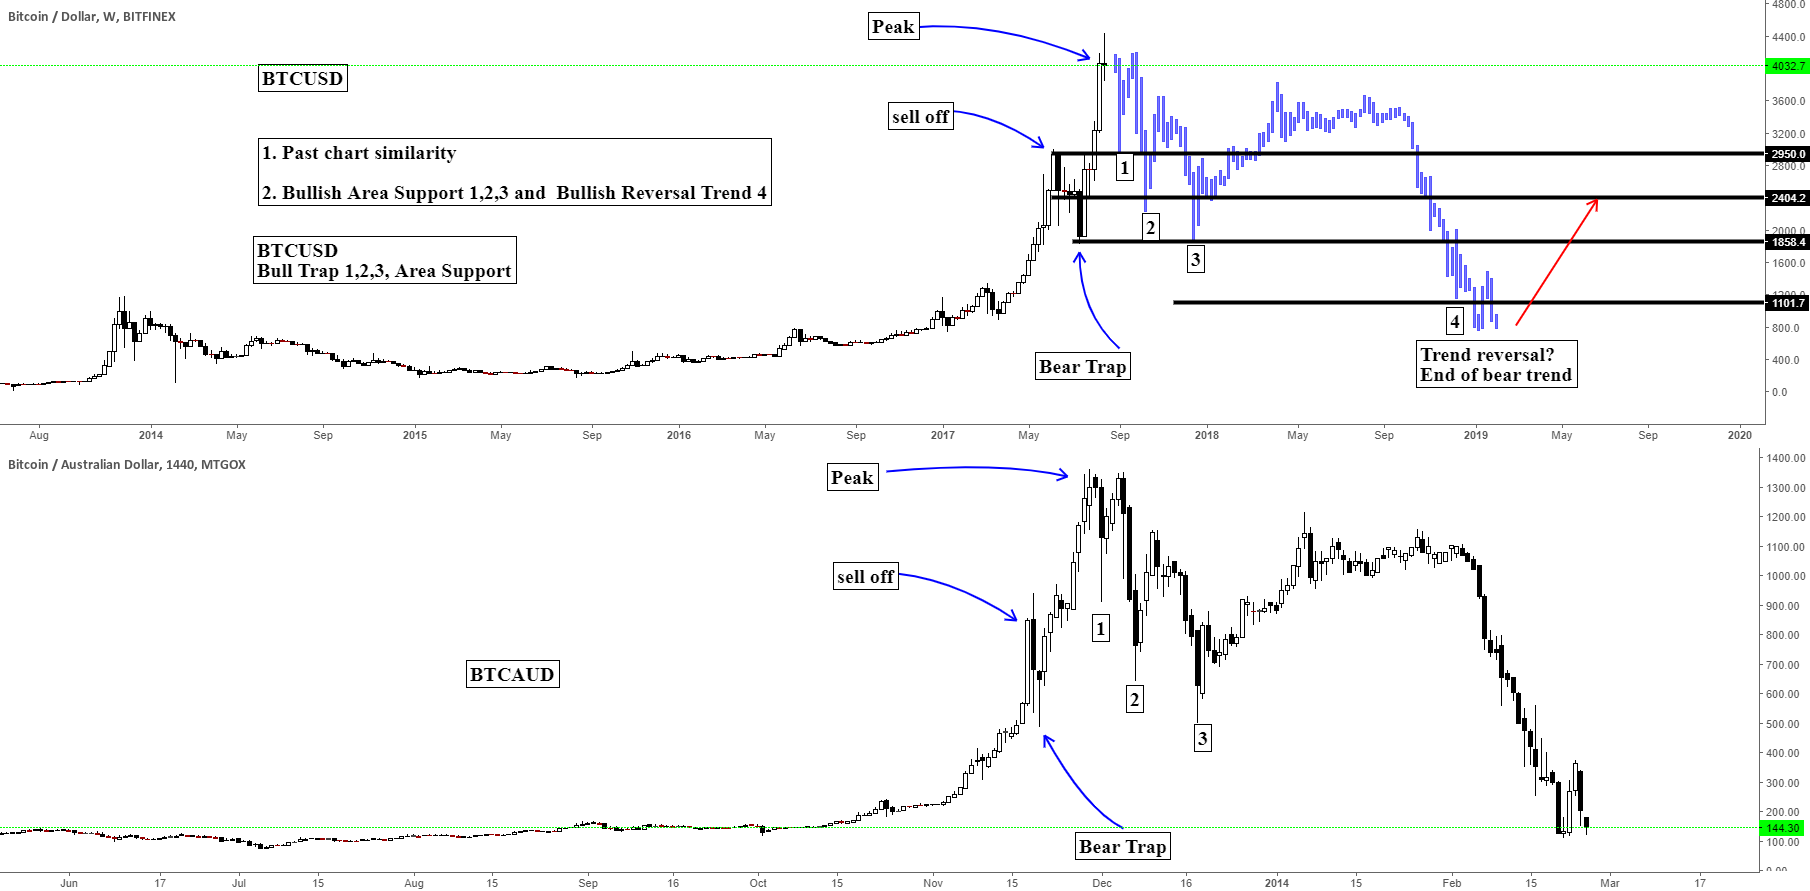 BTCUSD/BTCUSDT/  Bitcoin Past chart similarity